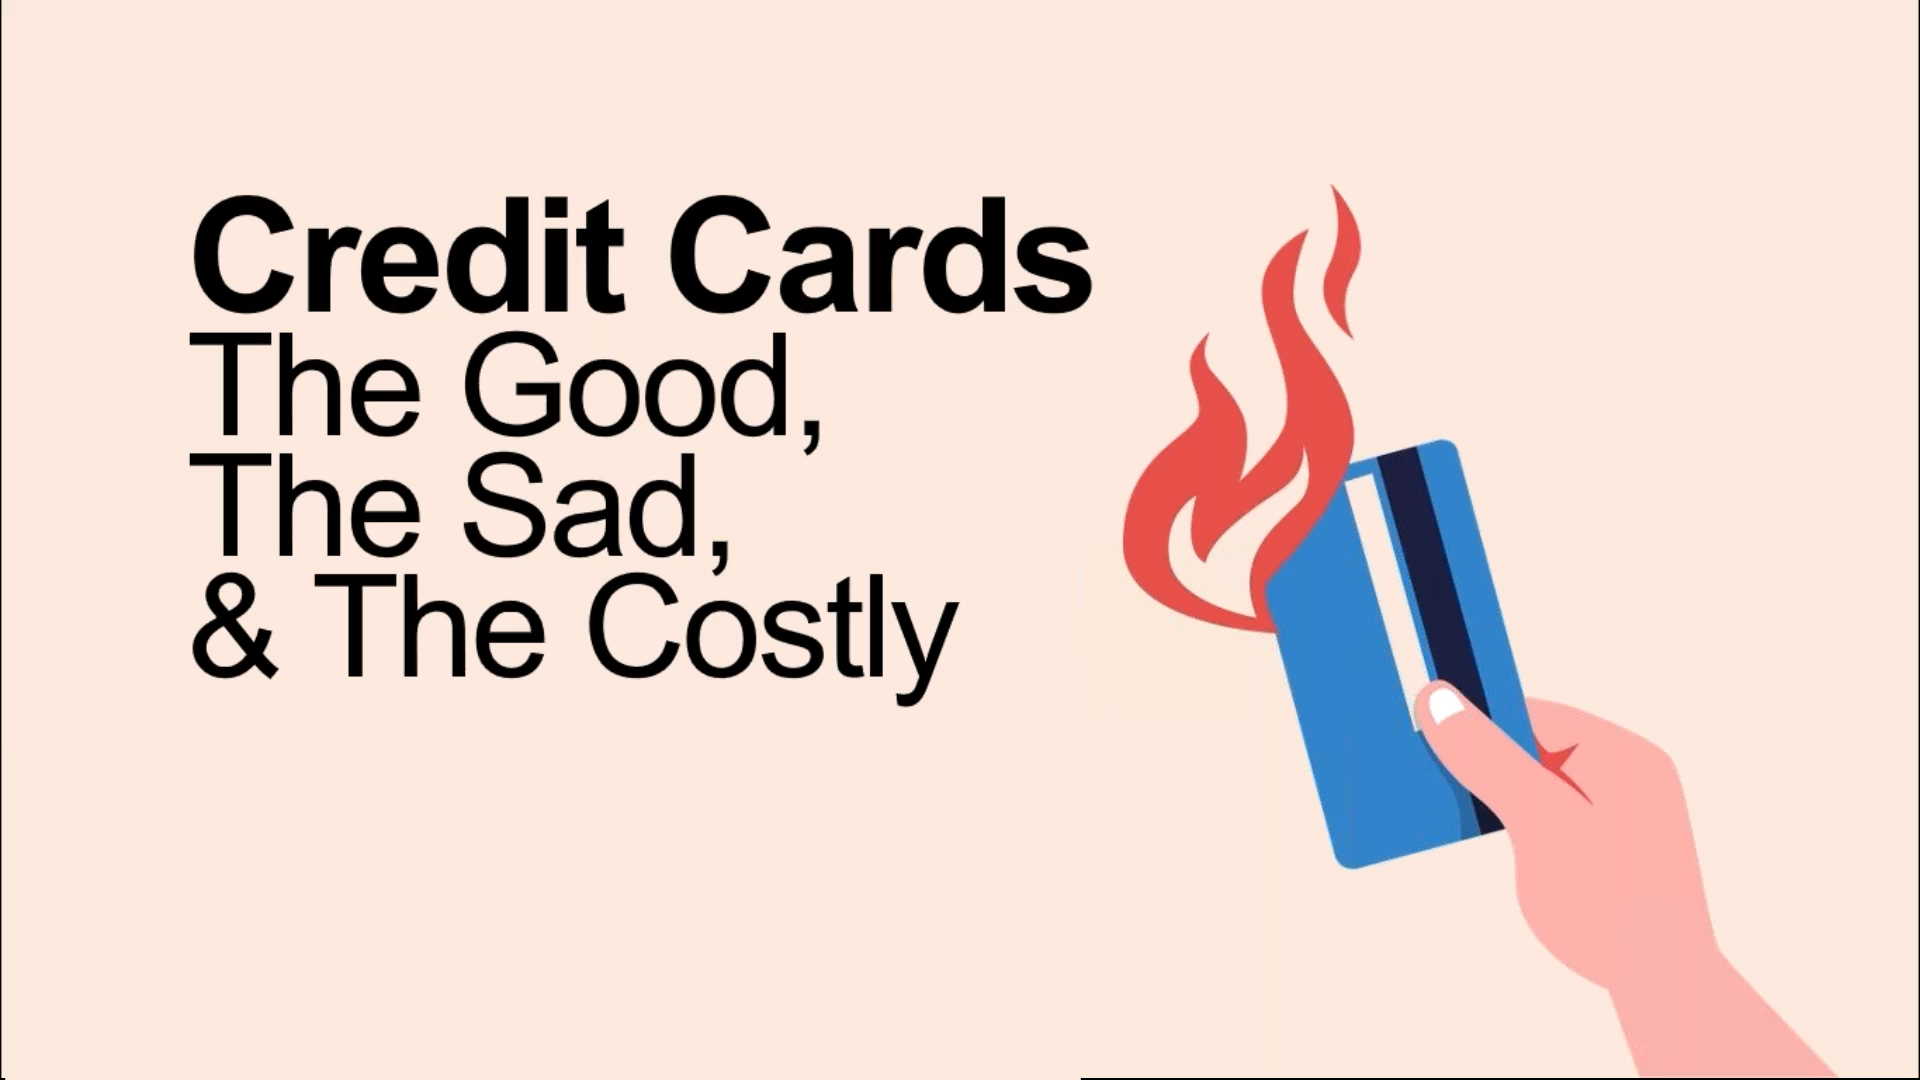 Credit Cards: The Good, The Sad, and The Costly